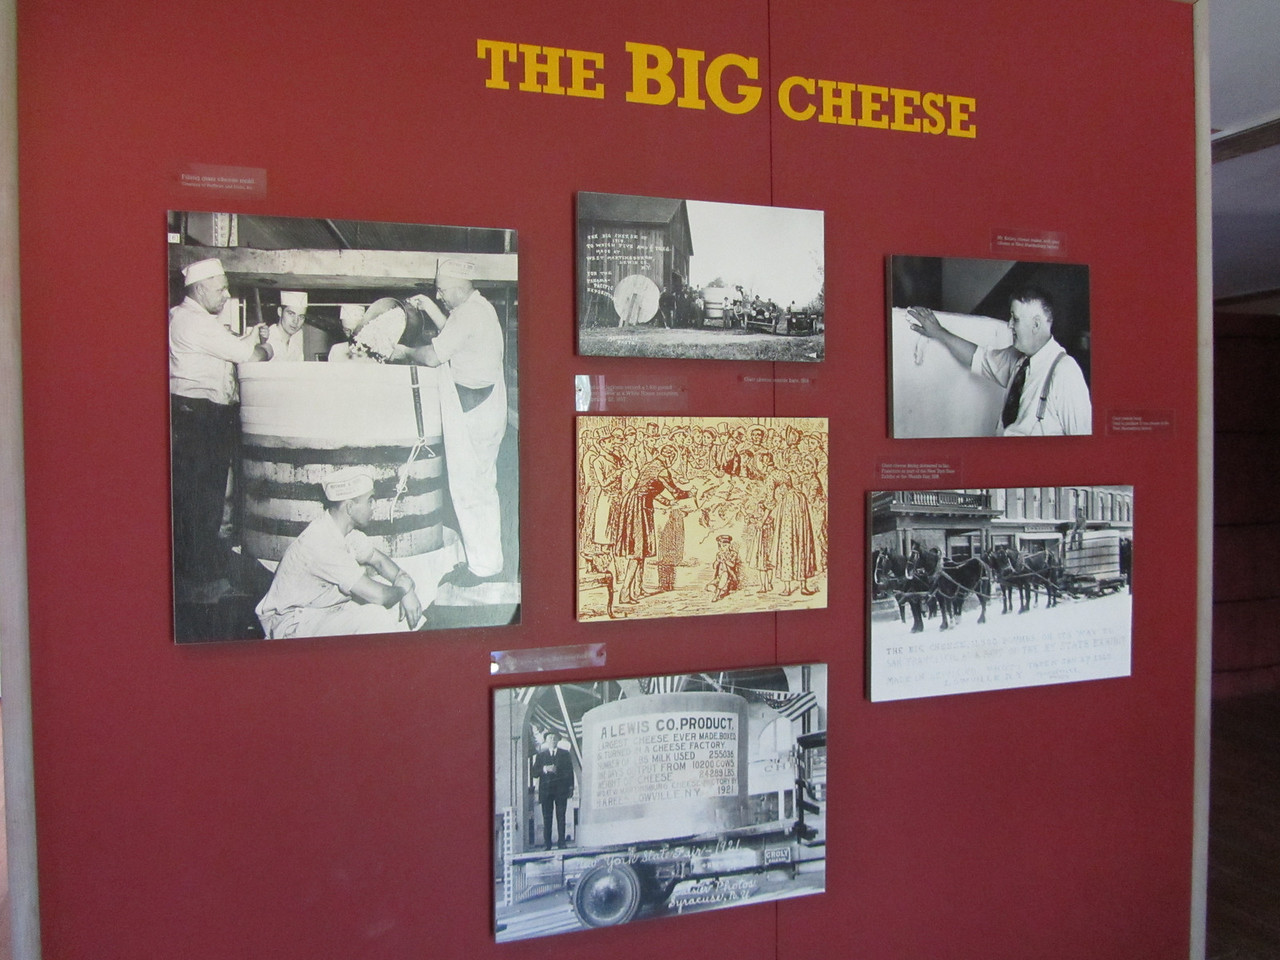 """The Big Cheese"" came from wheels of cheese made for the state fair. Each year trying to make a wheel larger than the last.<br /> <br /> In 1914 it weighed 5.5 tons. In 1921 it was 12 tons. yum."